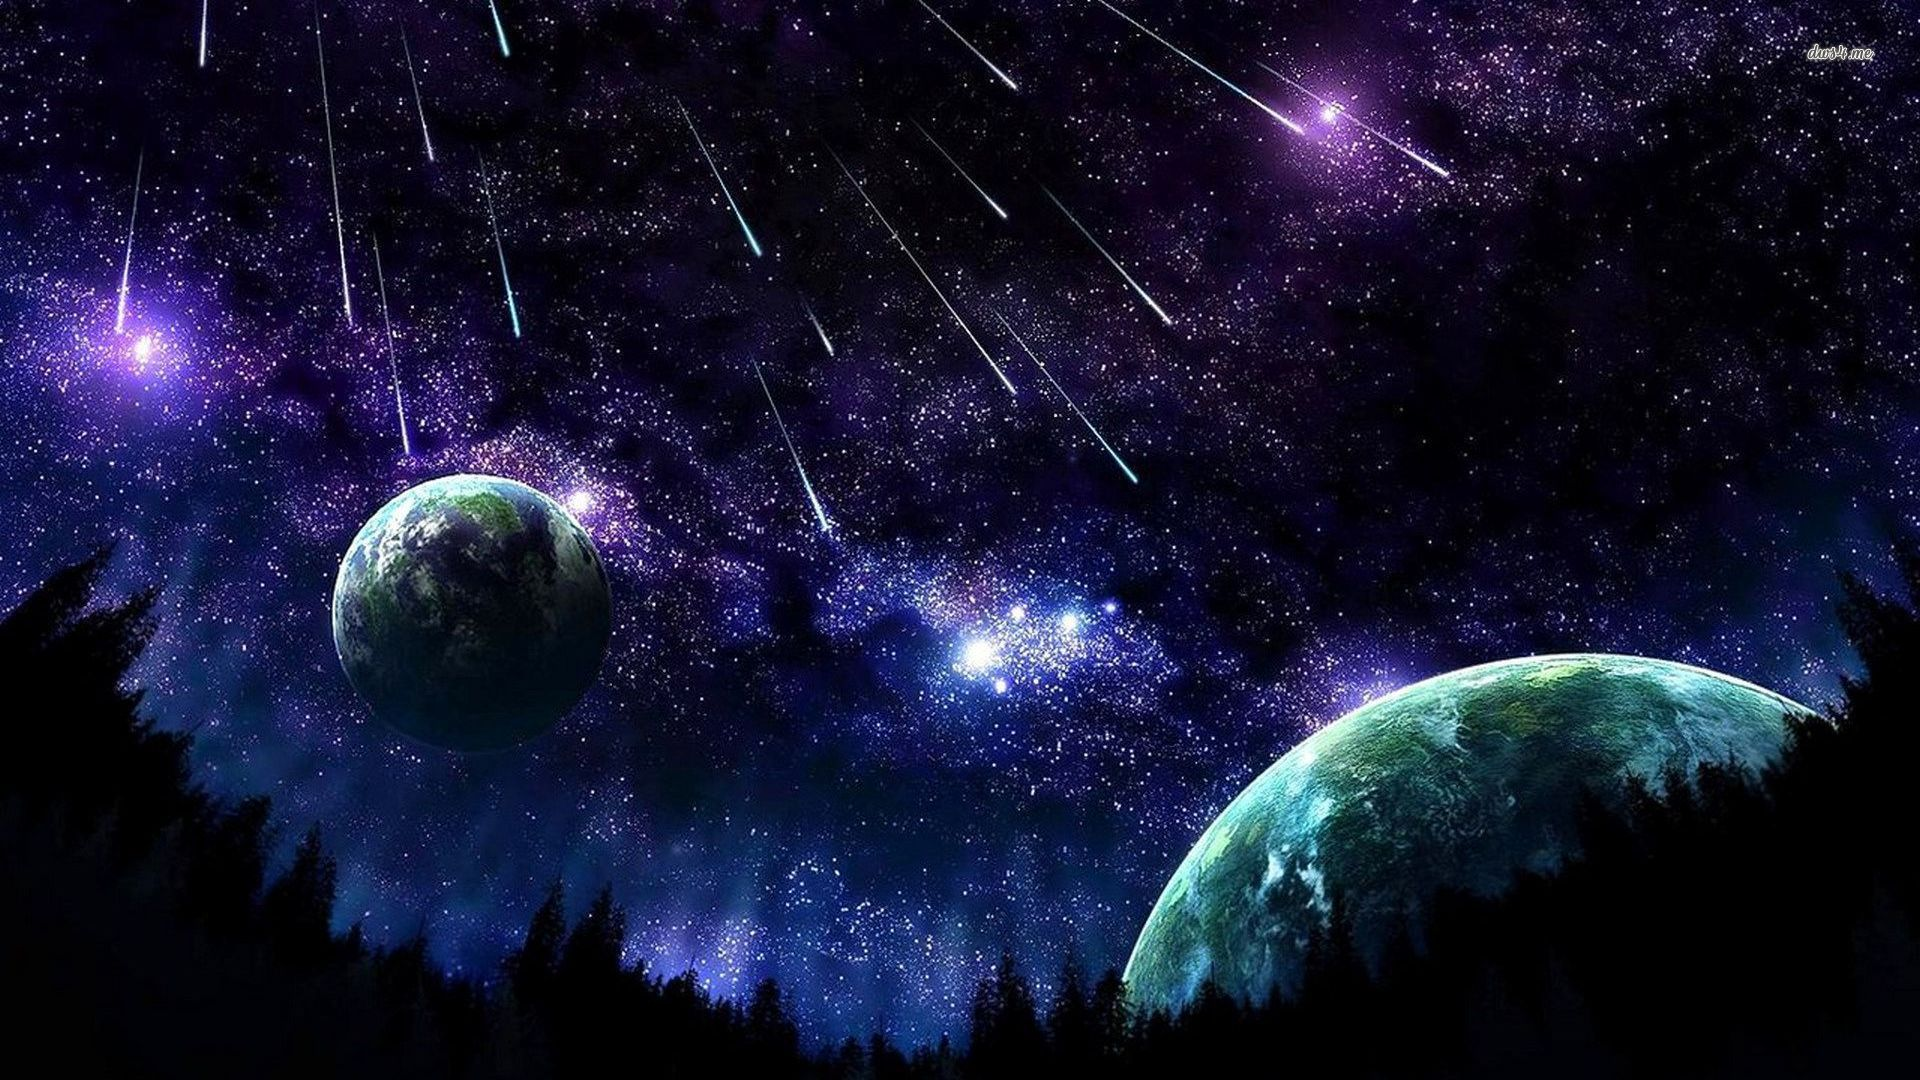 Space Themed wallpaper download